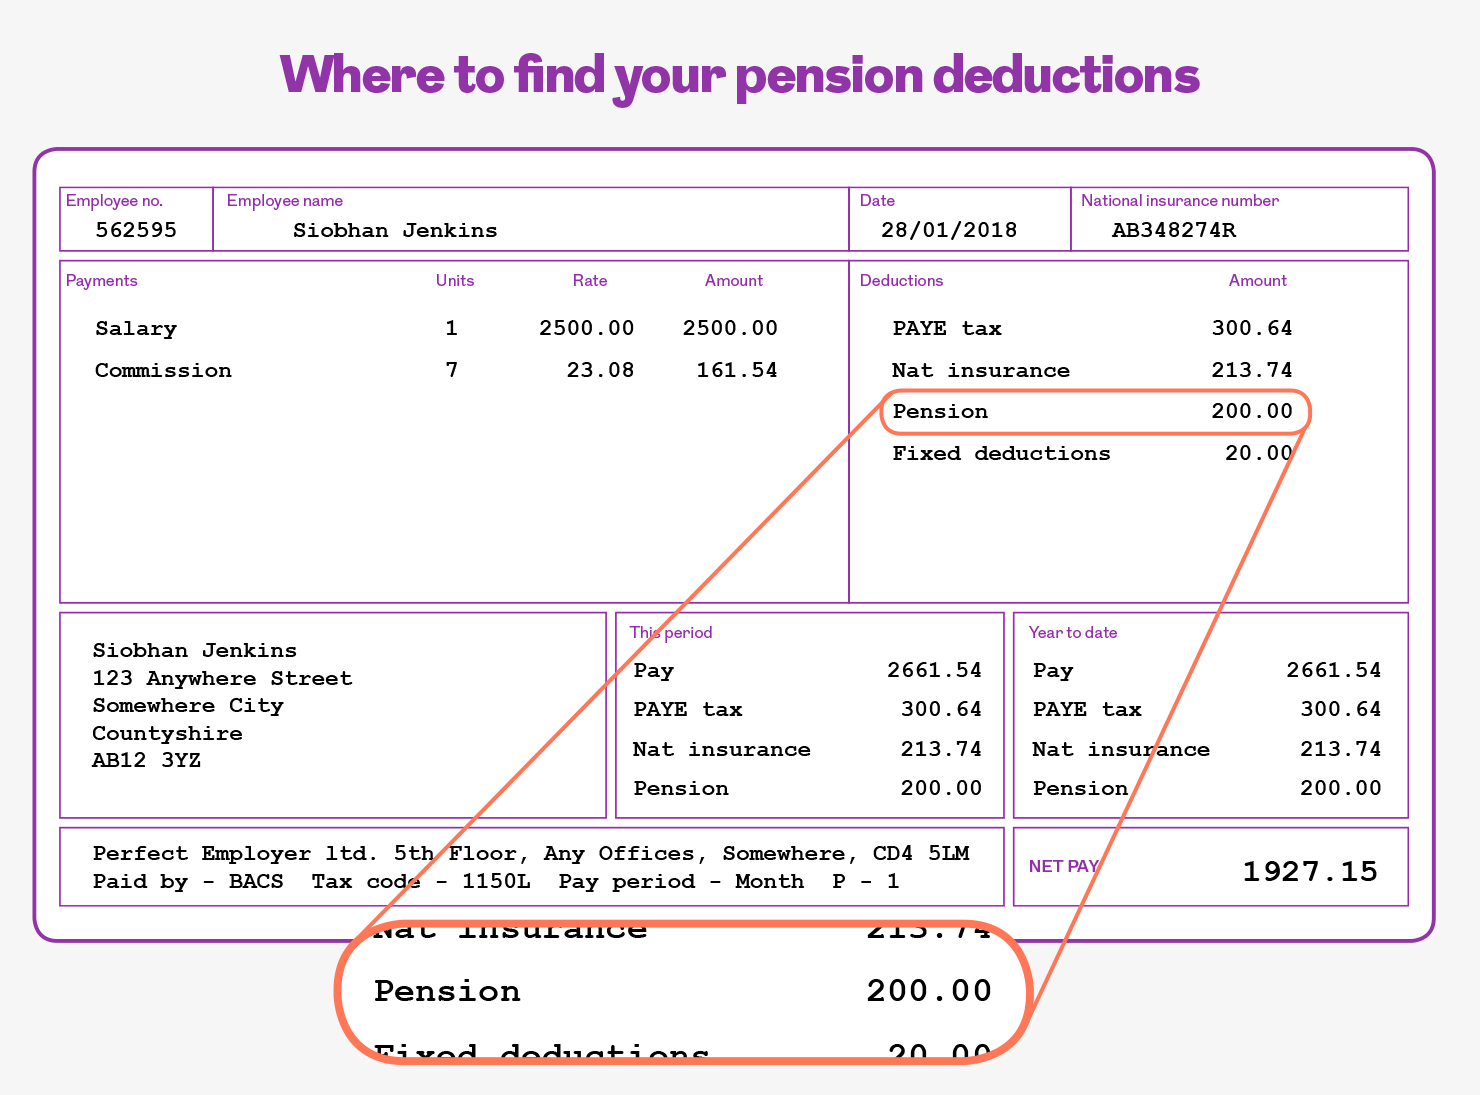 a payslip with the pensions deductions showns. This image is an infographic and has alternative text available if you are using a screen reader.